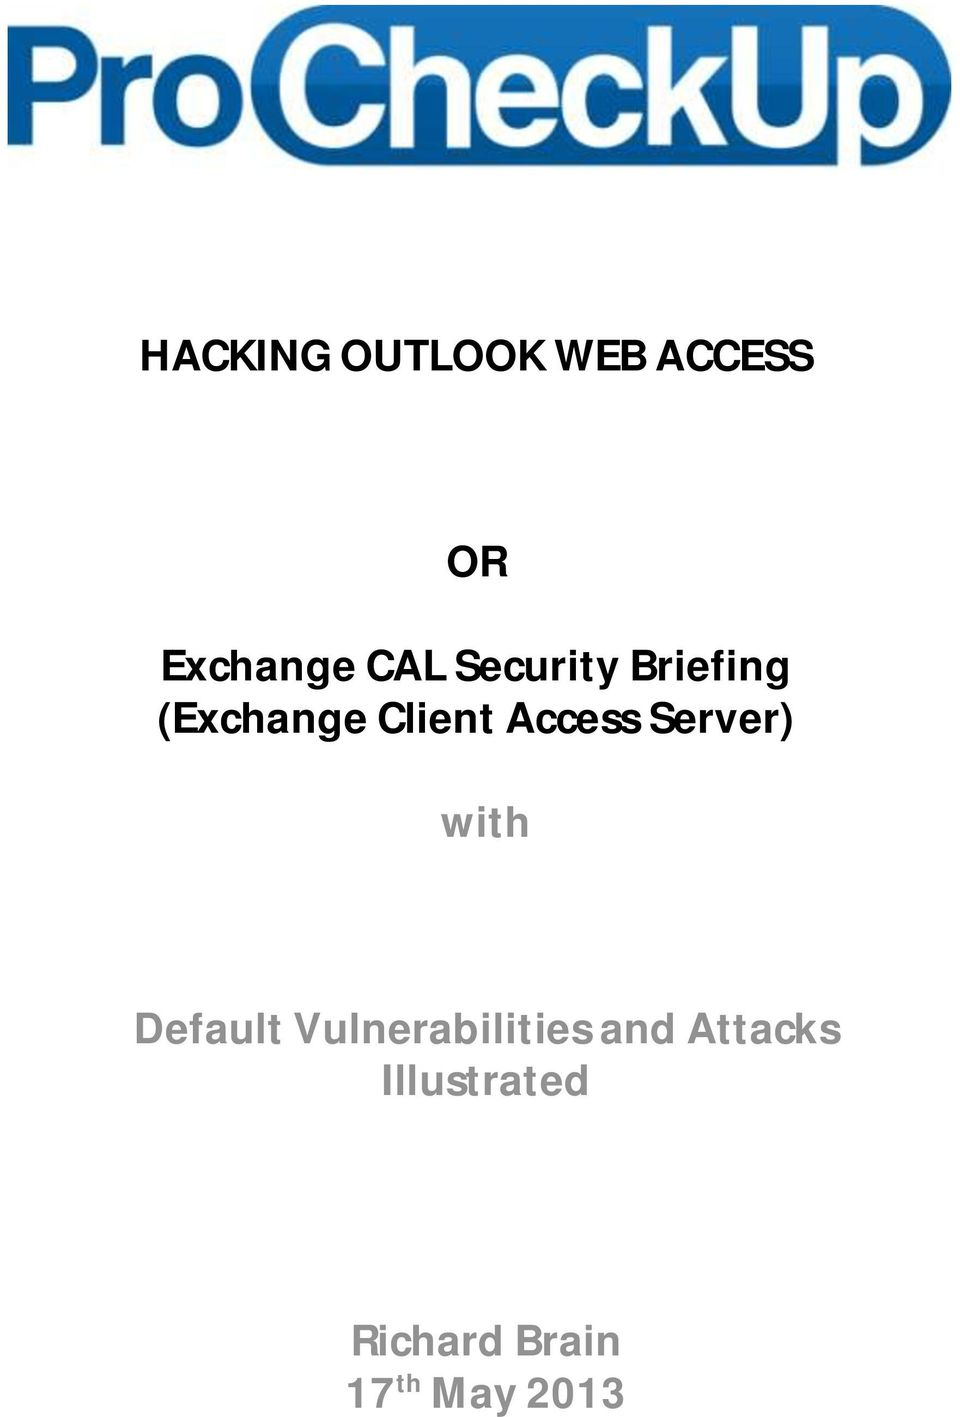 HACKING OUTLOOK WEB ACCESS  Exchange CAL Security Briefing